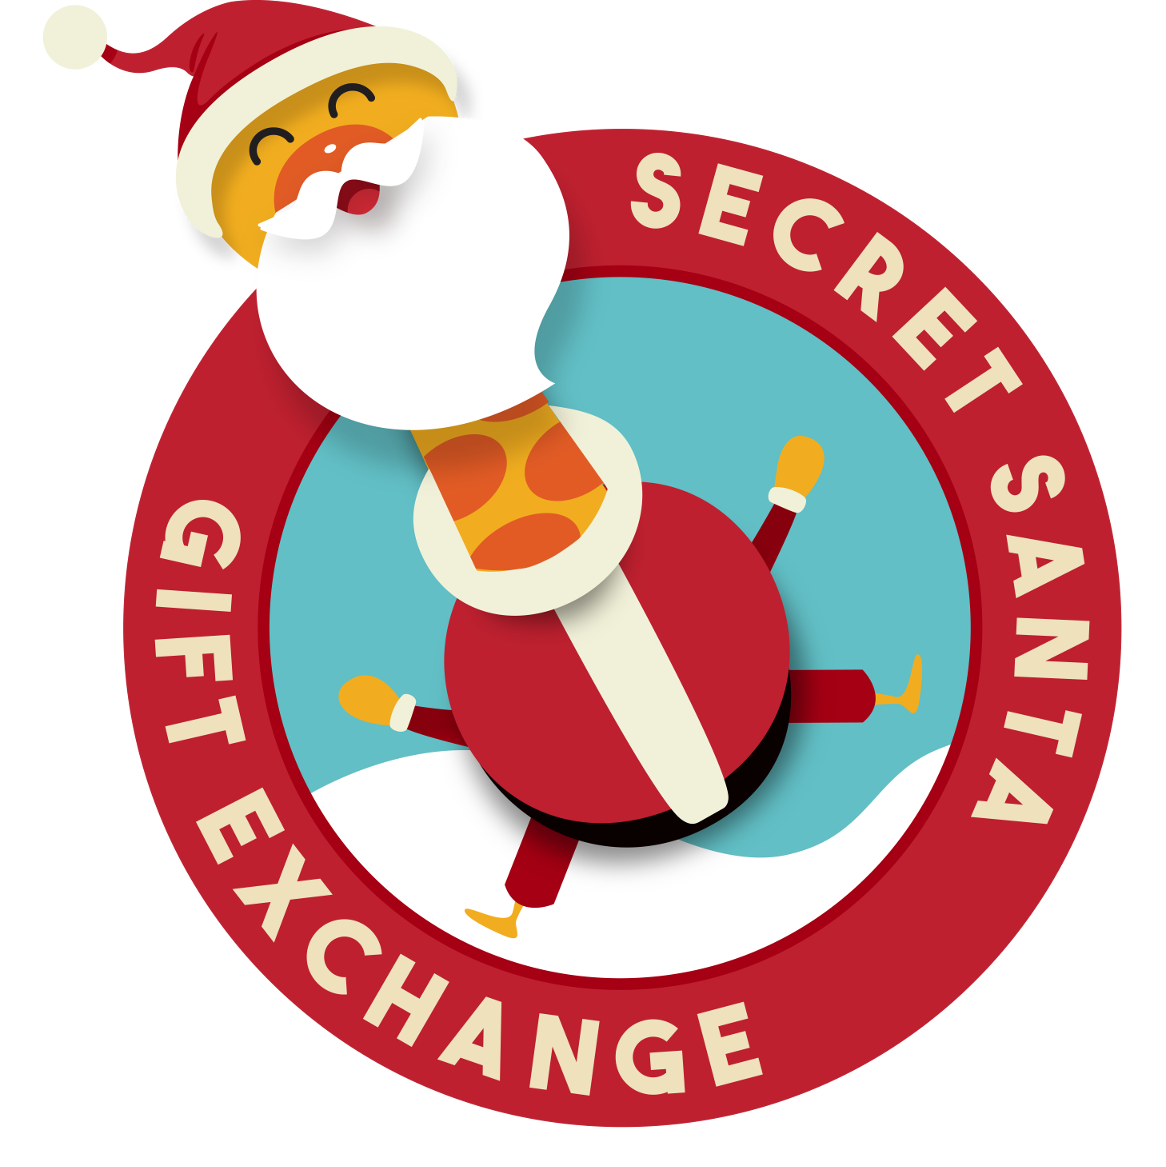 Christmas gift exchange clipart clipart freeuse library 28+ Collection of Secret Santa Gift Exchange Clipart | High quality ... clipart freeuse library